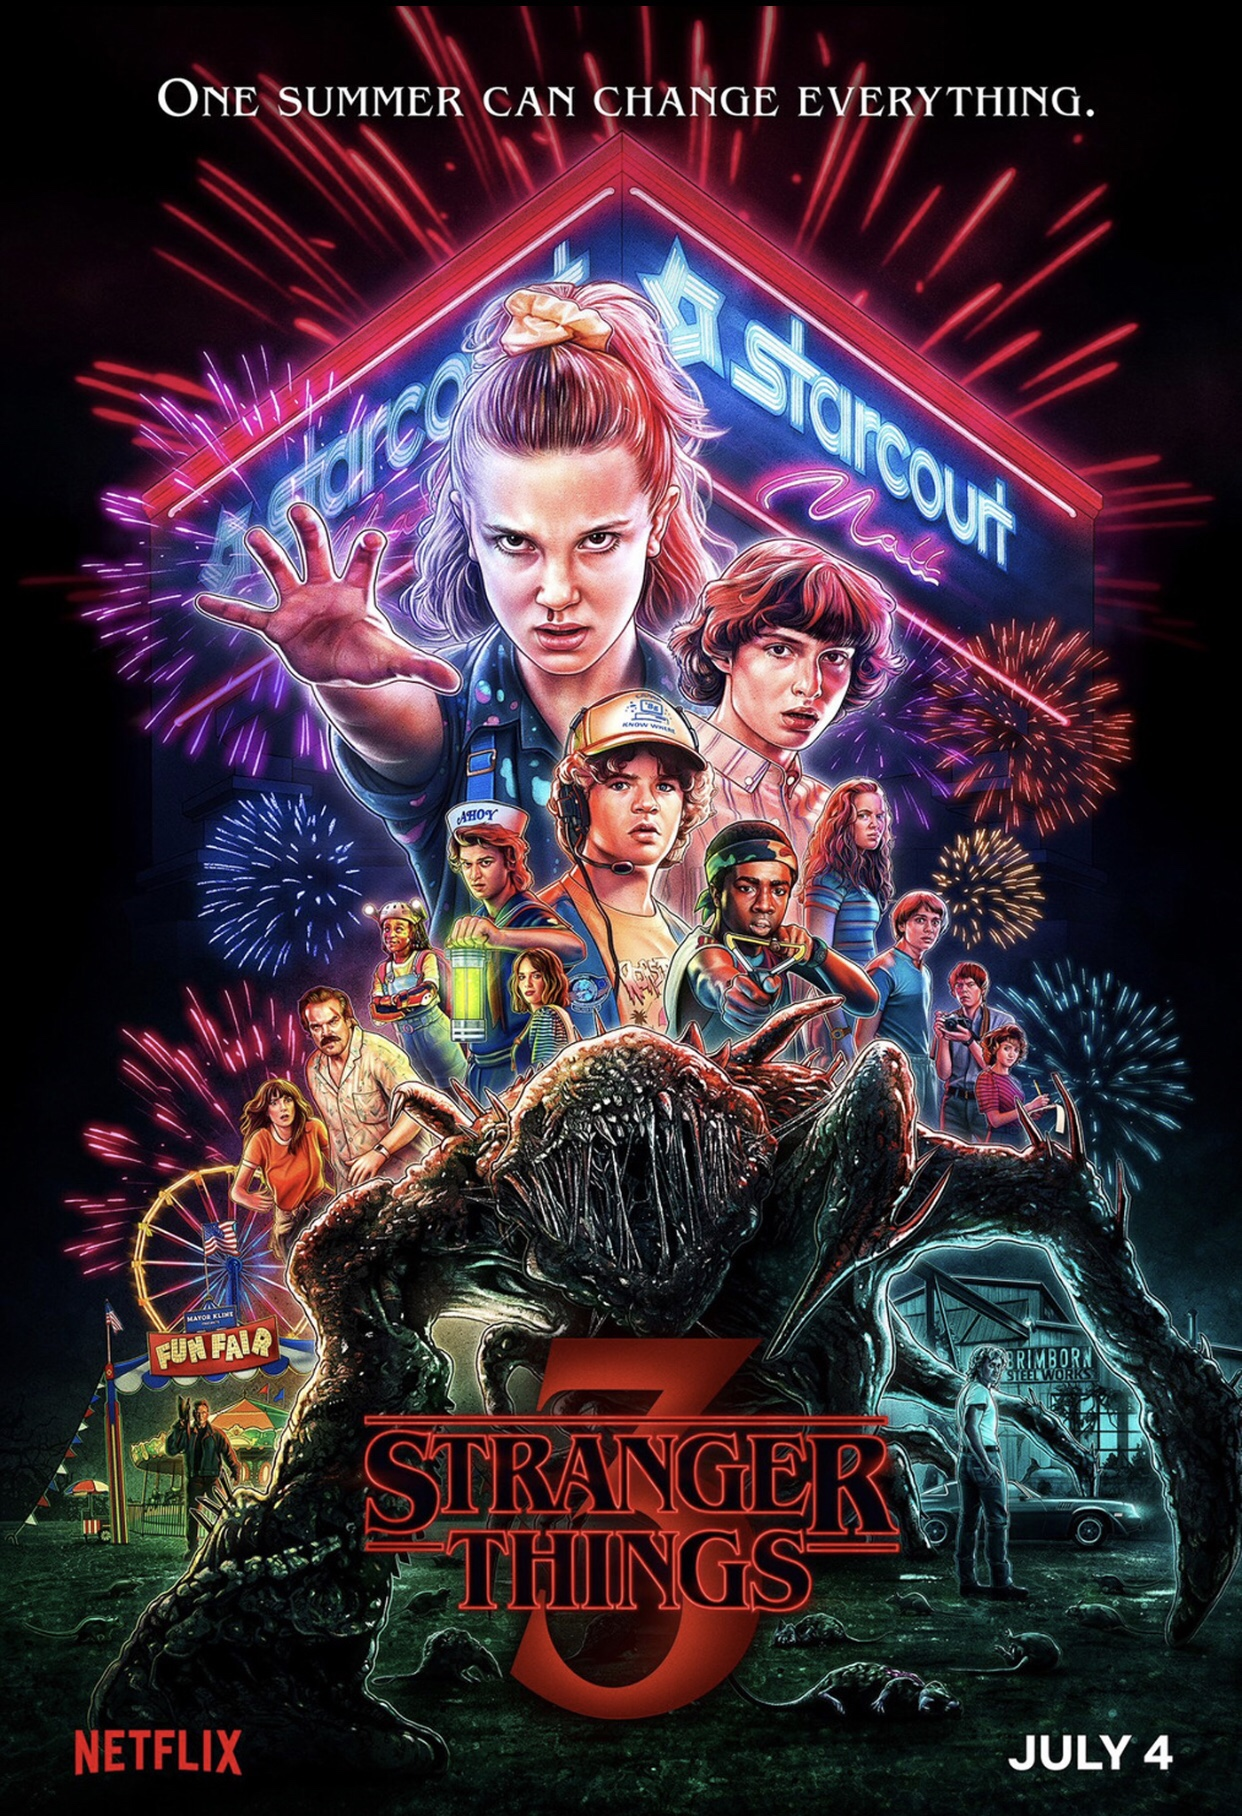 Stranger Things Season 3 Poster by Kyle Lambert